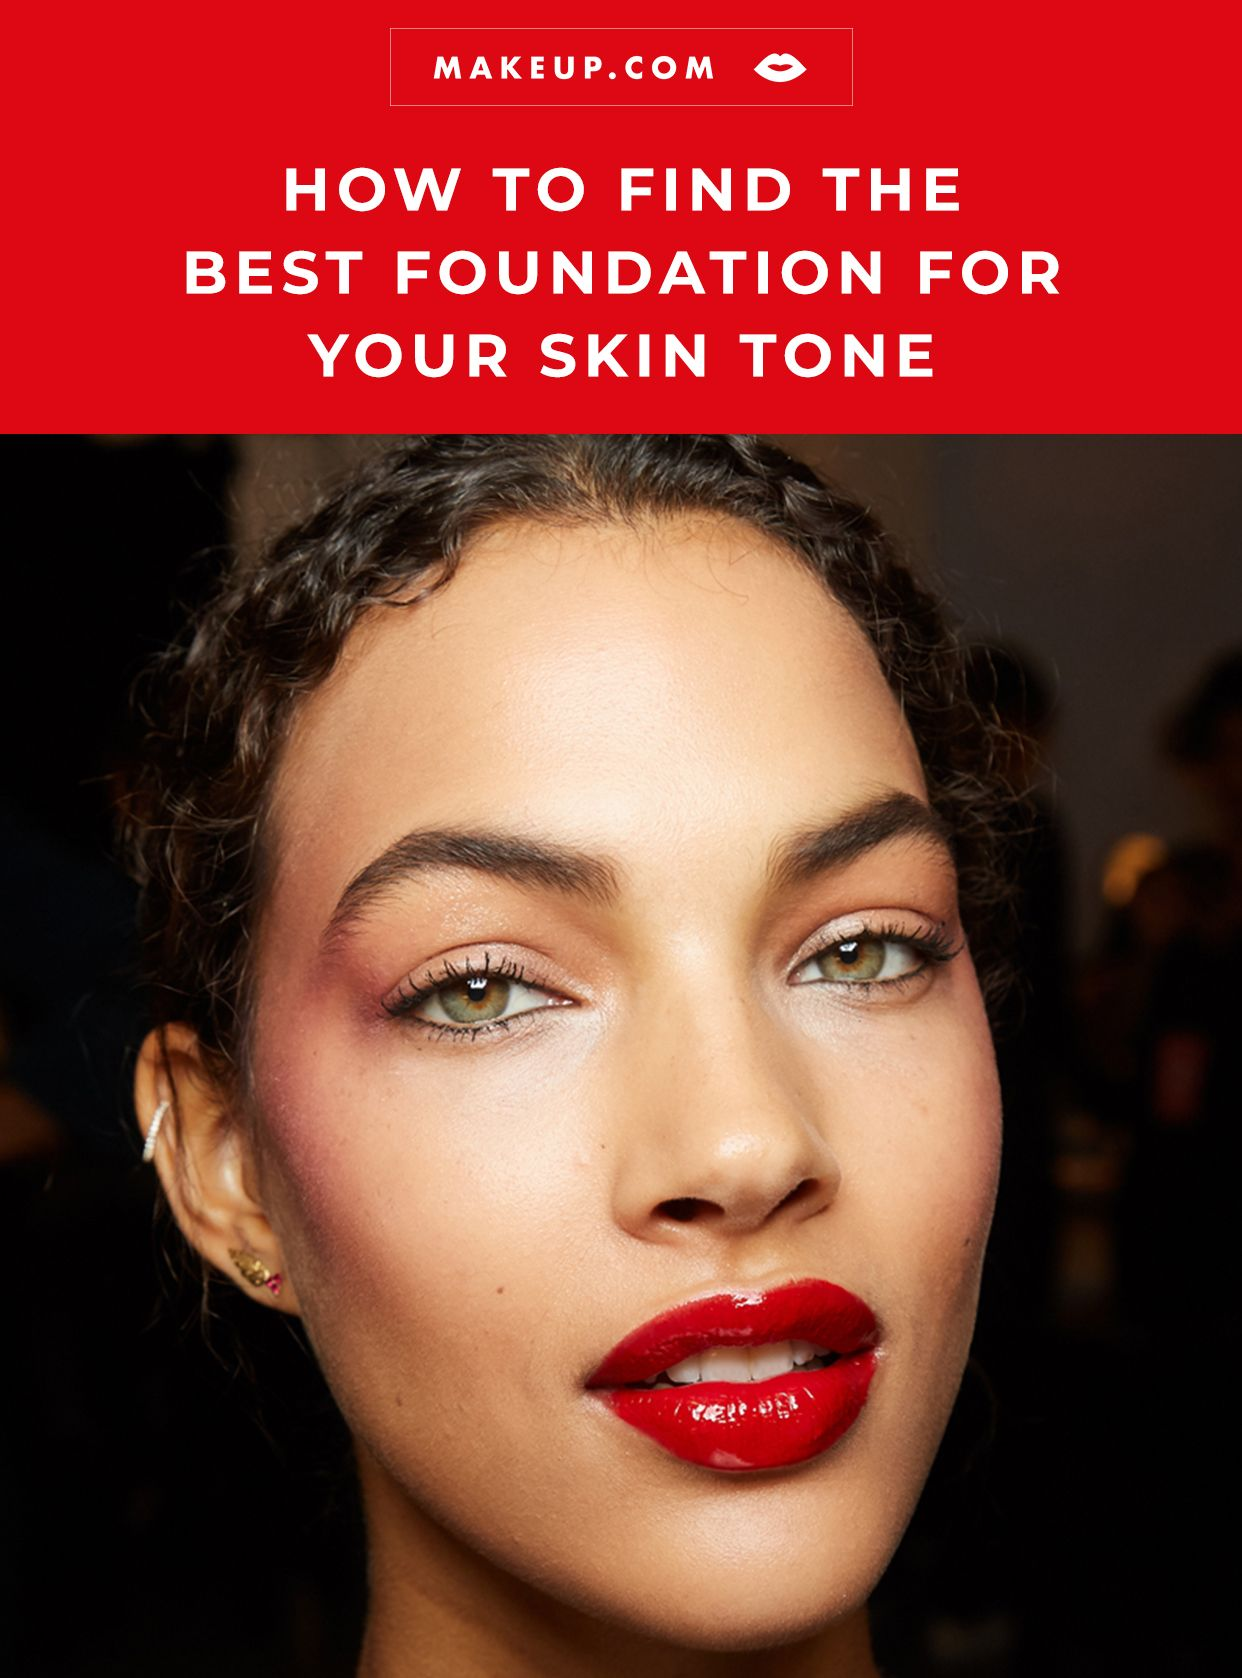 How to Find the Best Foundation for Your Skin Tone